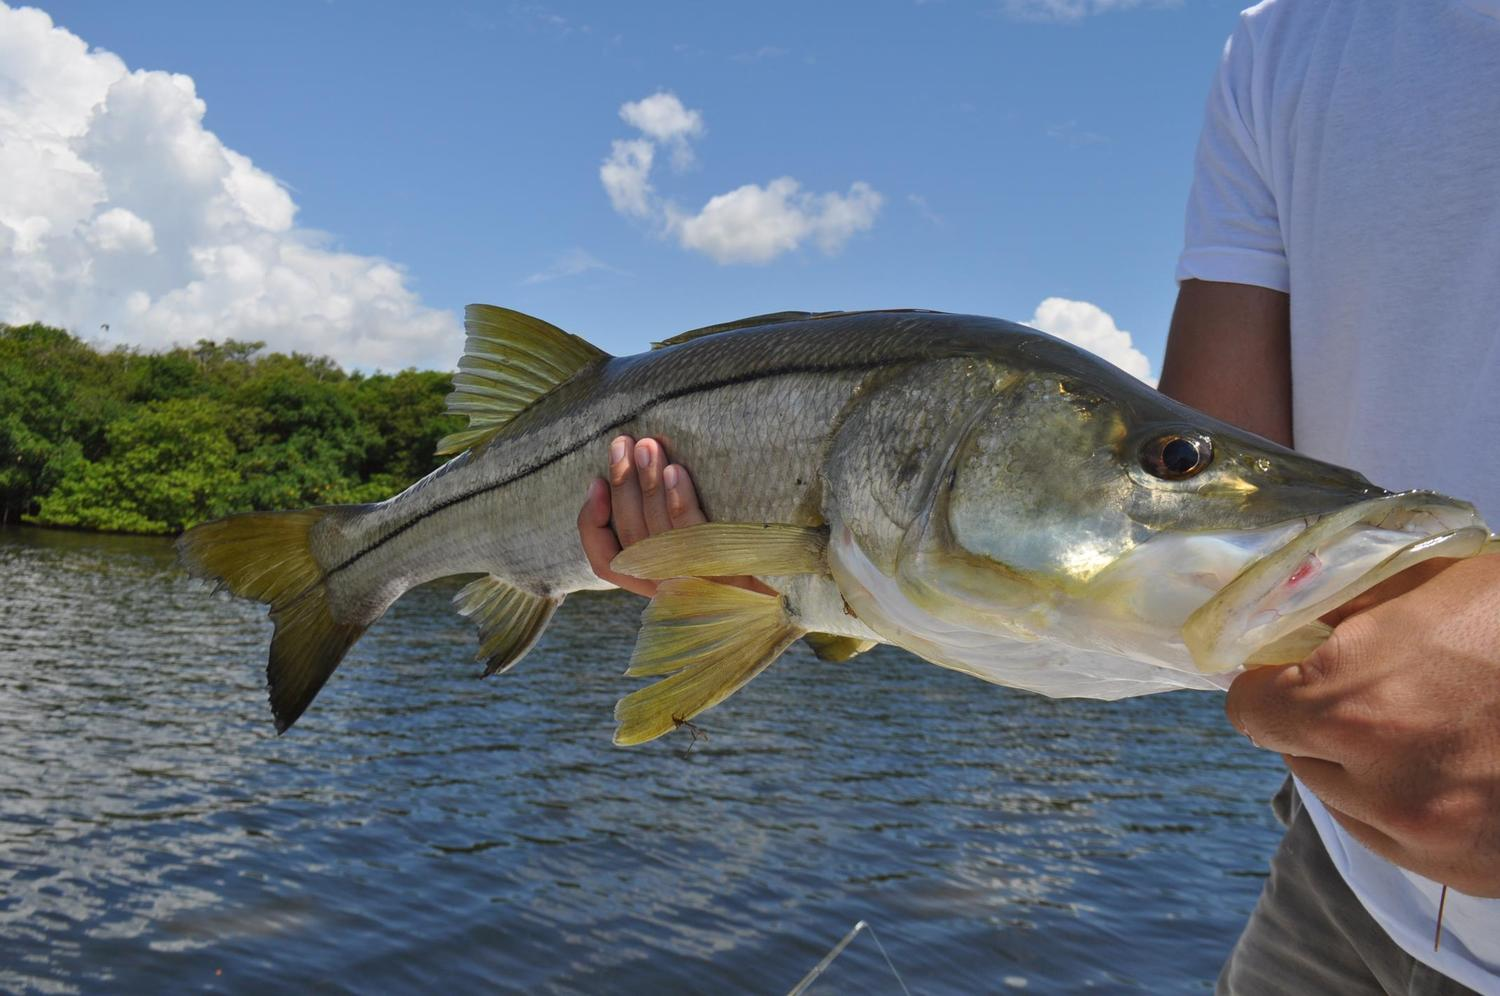 miami snook fishing charters biscayne bay flats flamingo guide